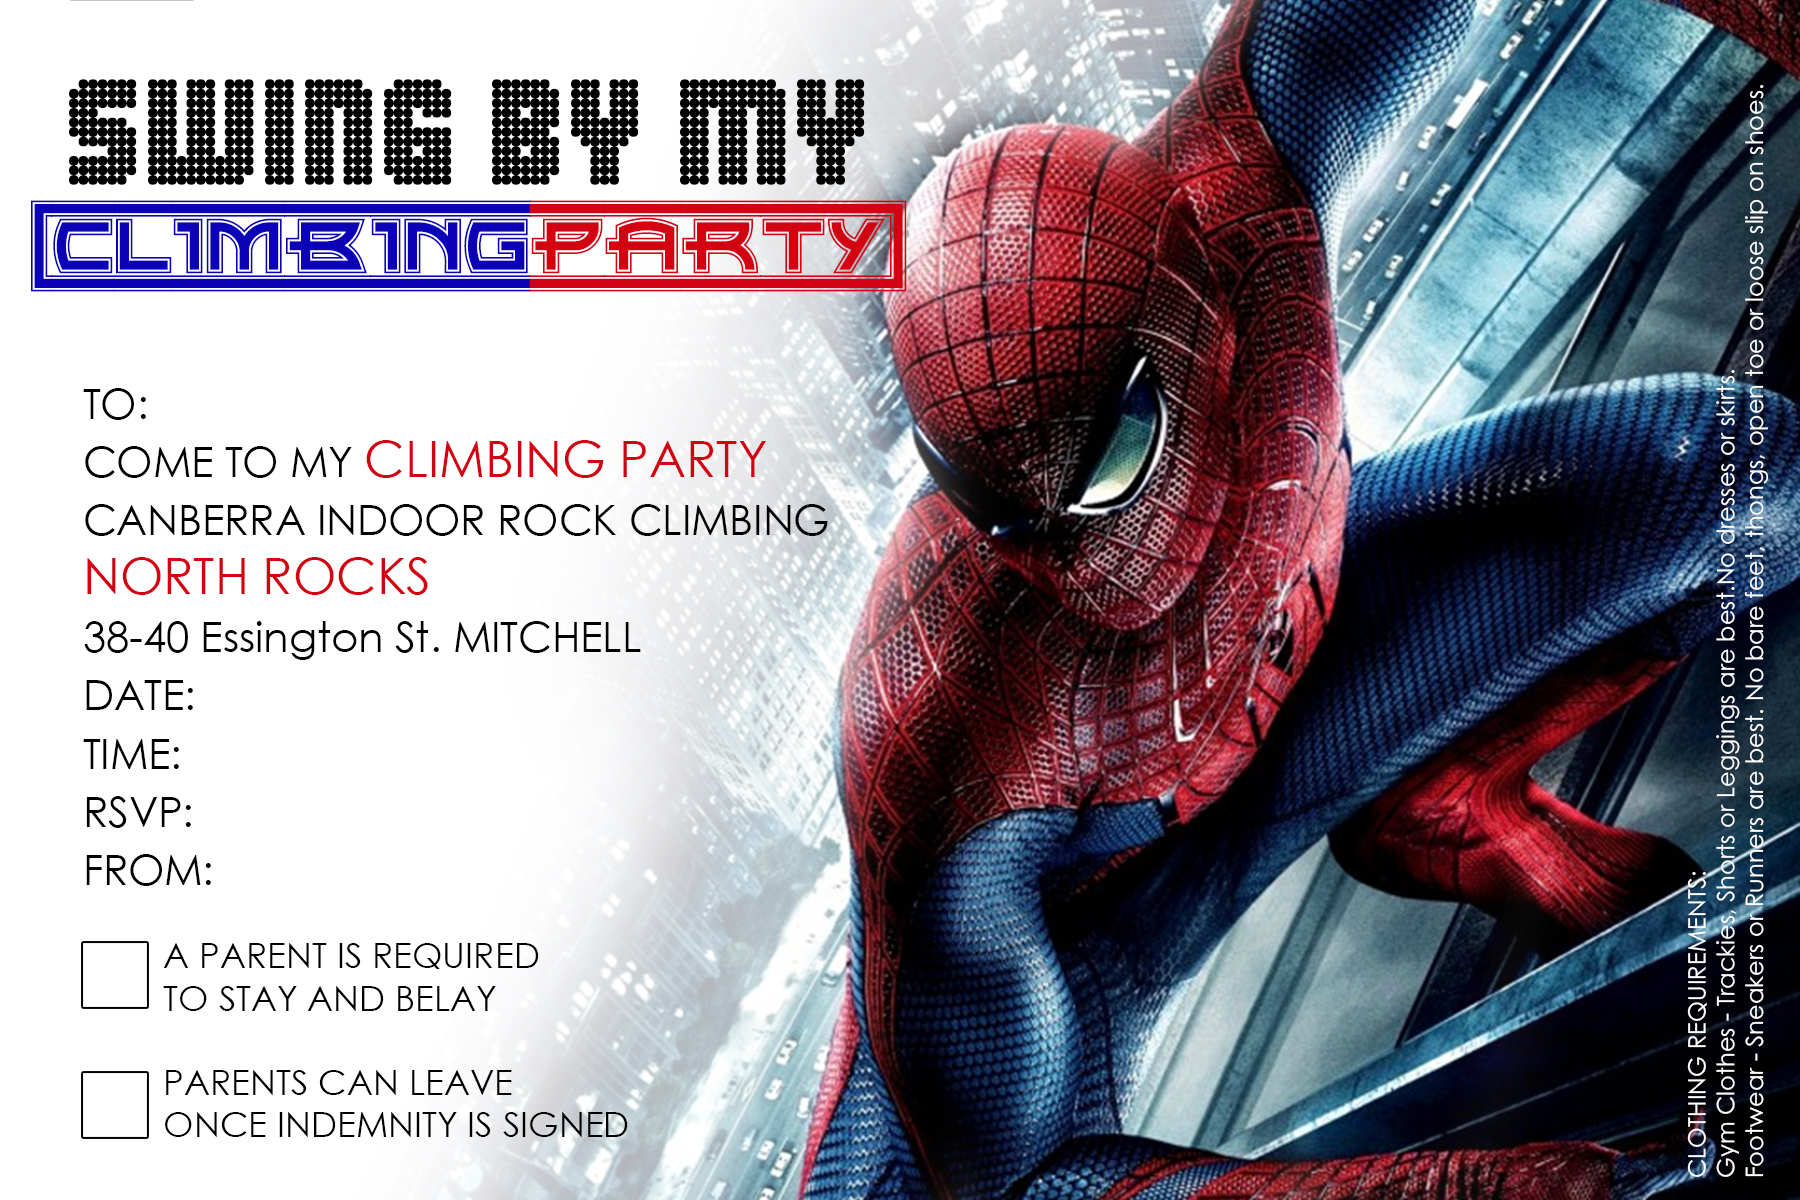 Party invitations canberra indoor rock climbing image for the party invitation canberra indoor rock climbing hume solutioingenieria Gallery